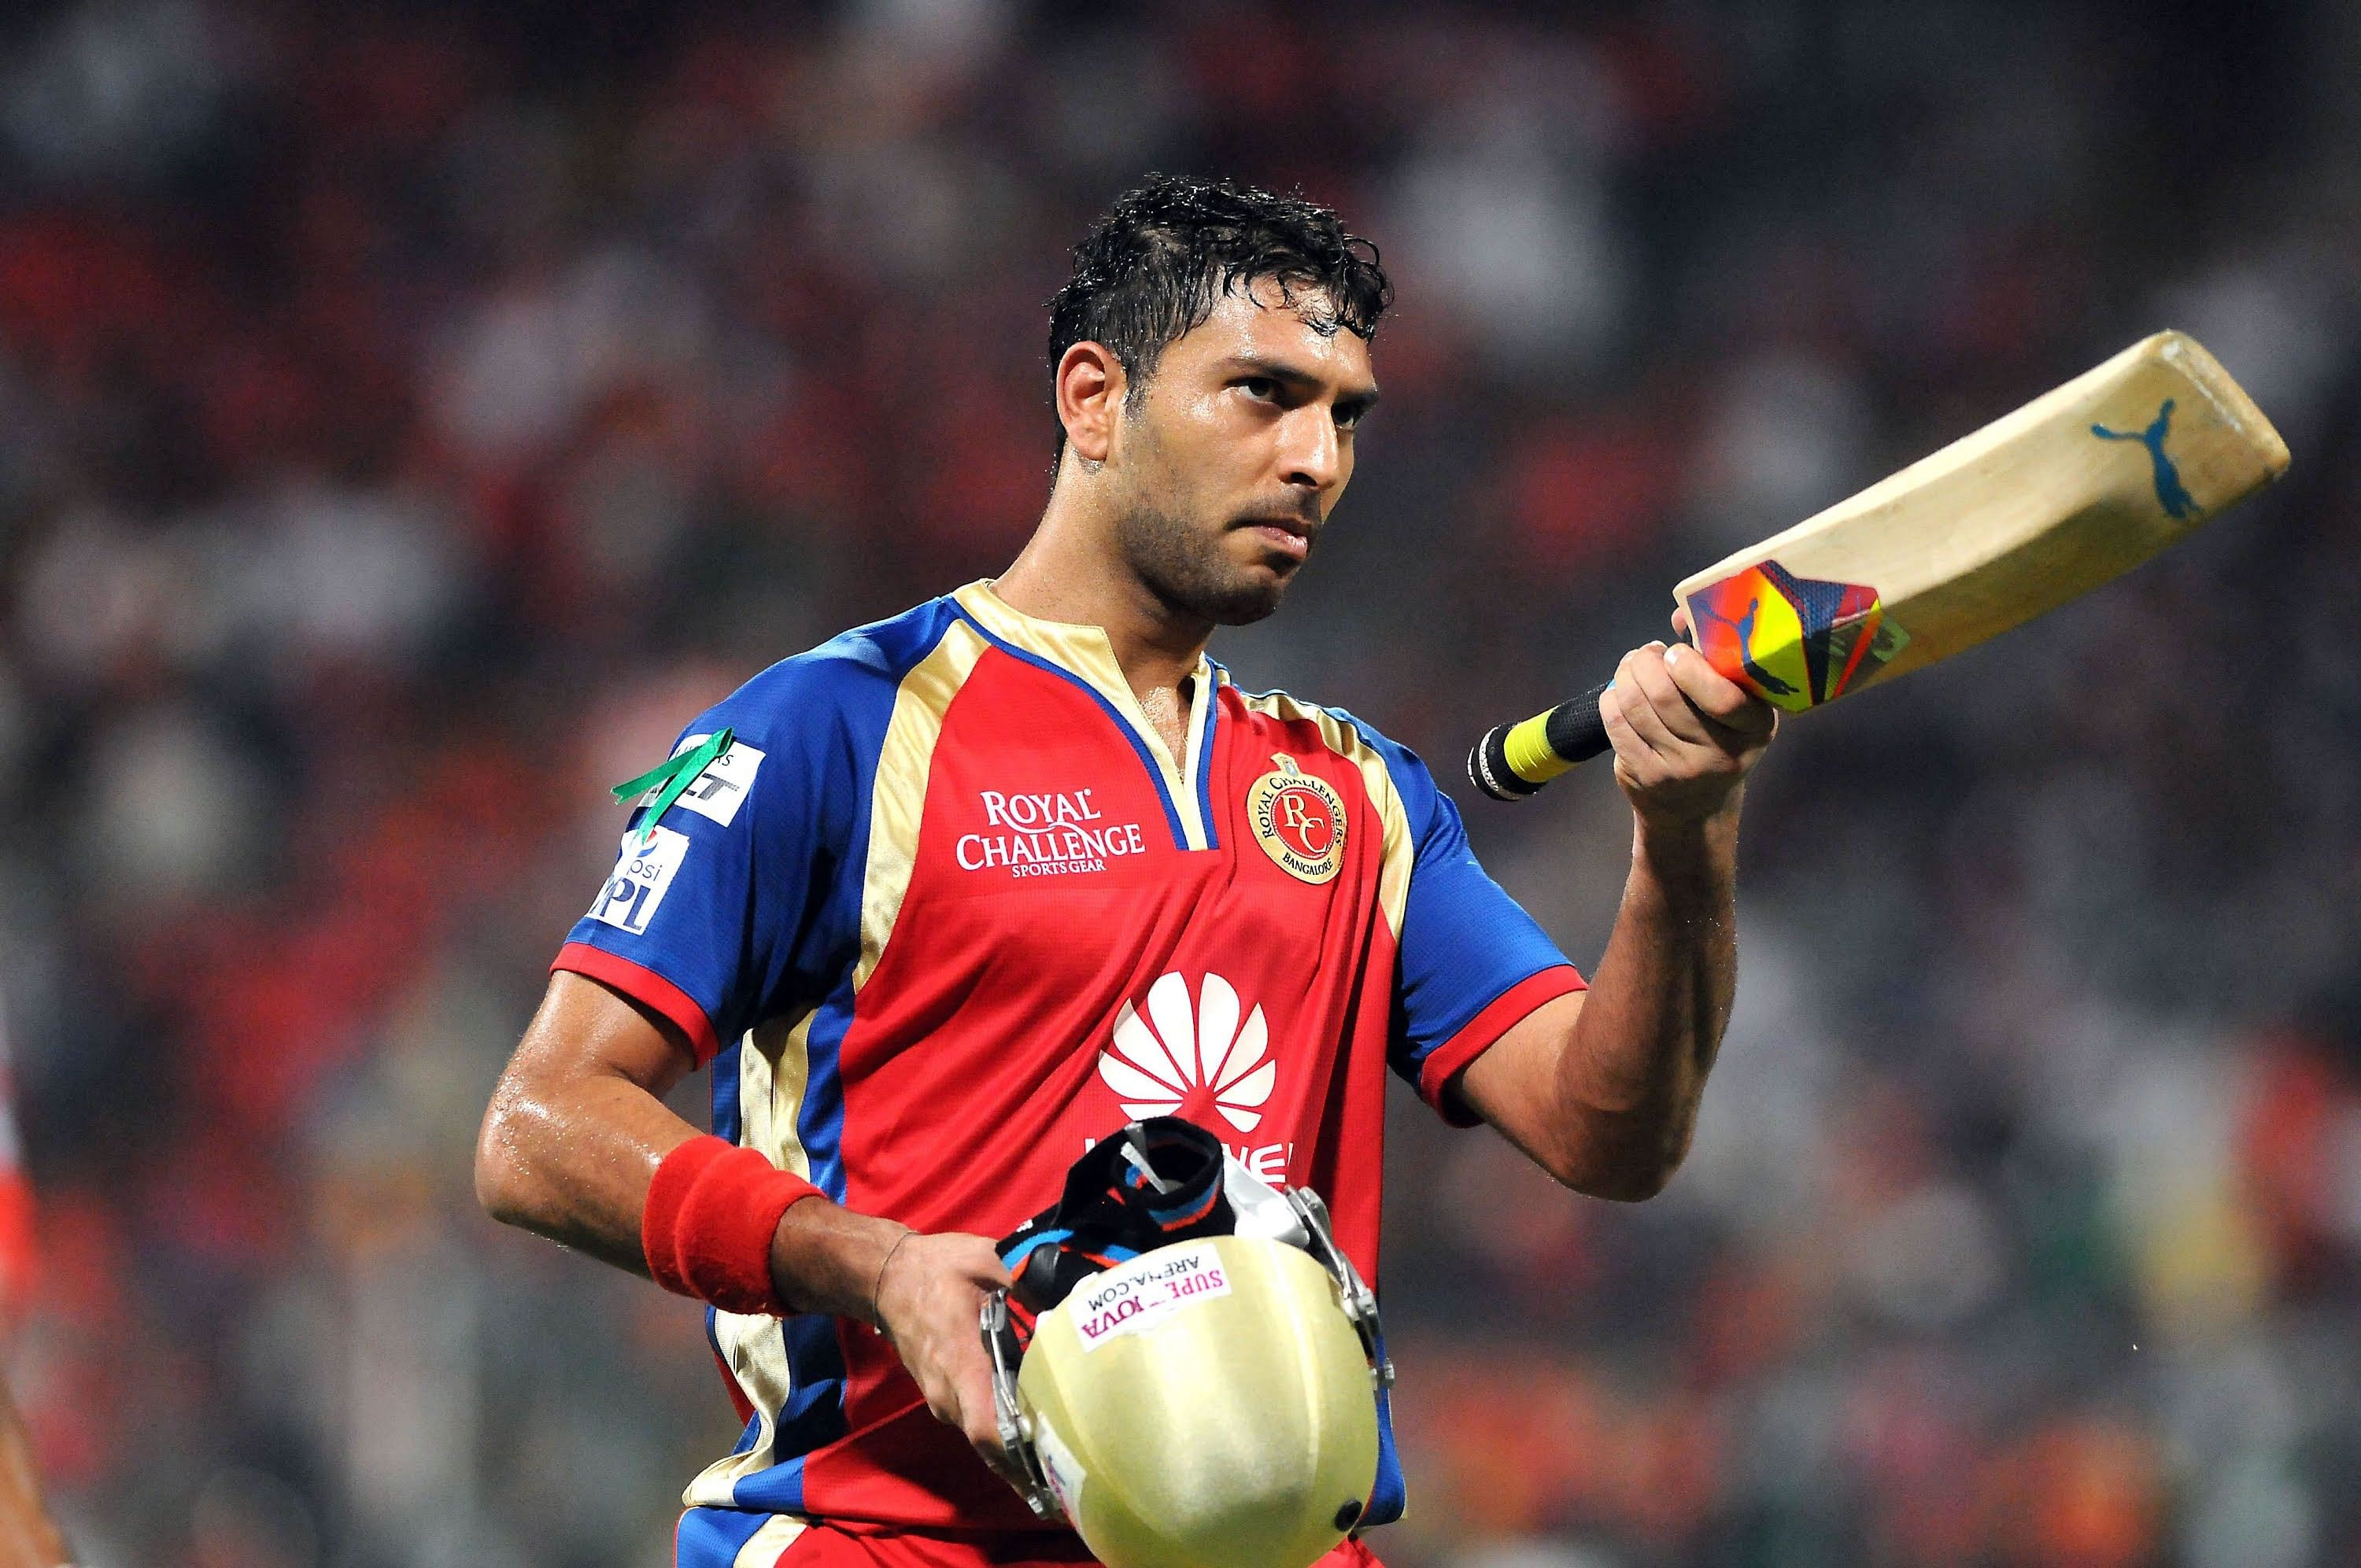 5 players who can forge a comeback to the Indian side with strong performances in IPL 2015